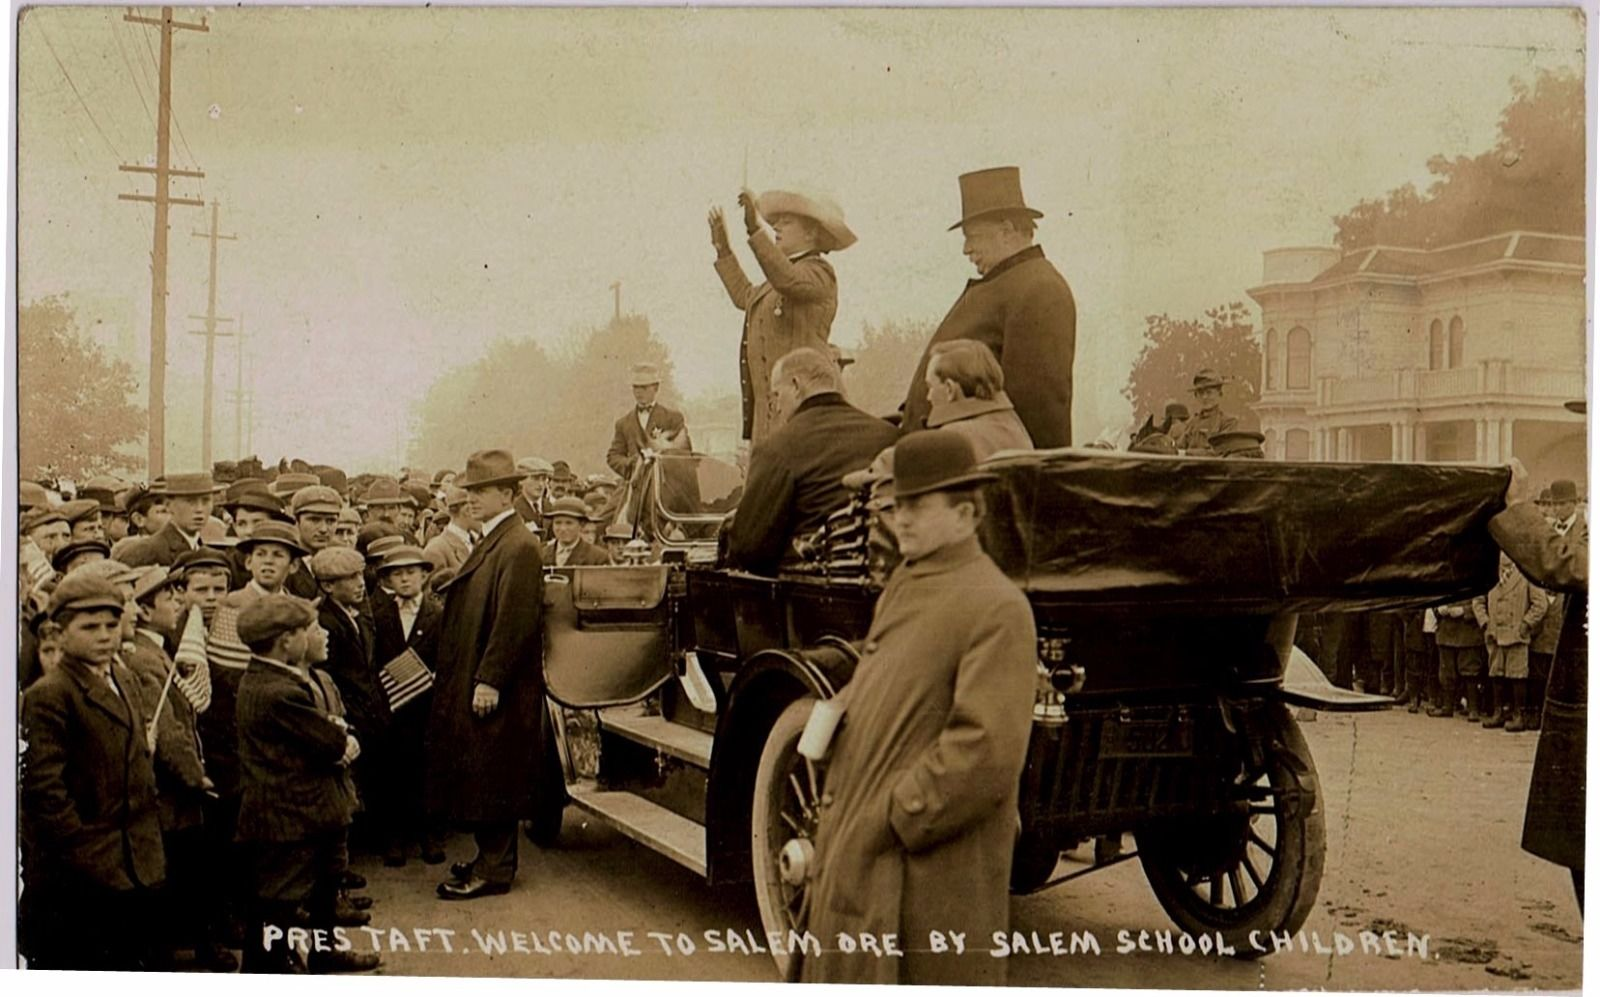 President Taft and his Secret Service men